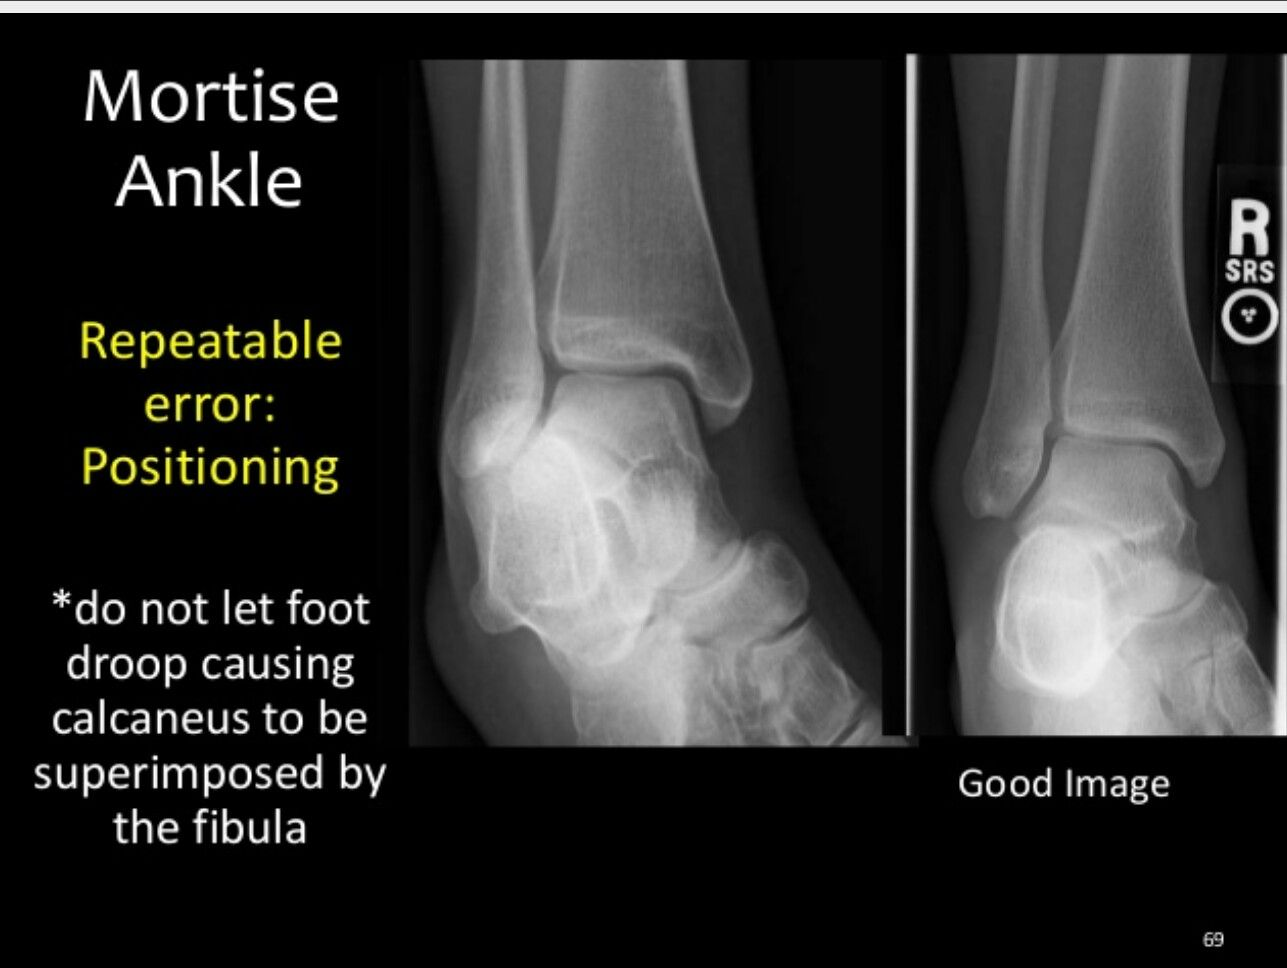 Mortise Ankle